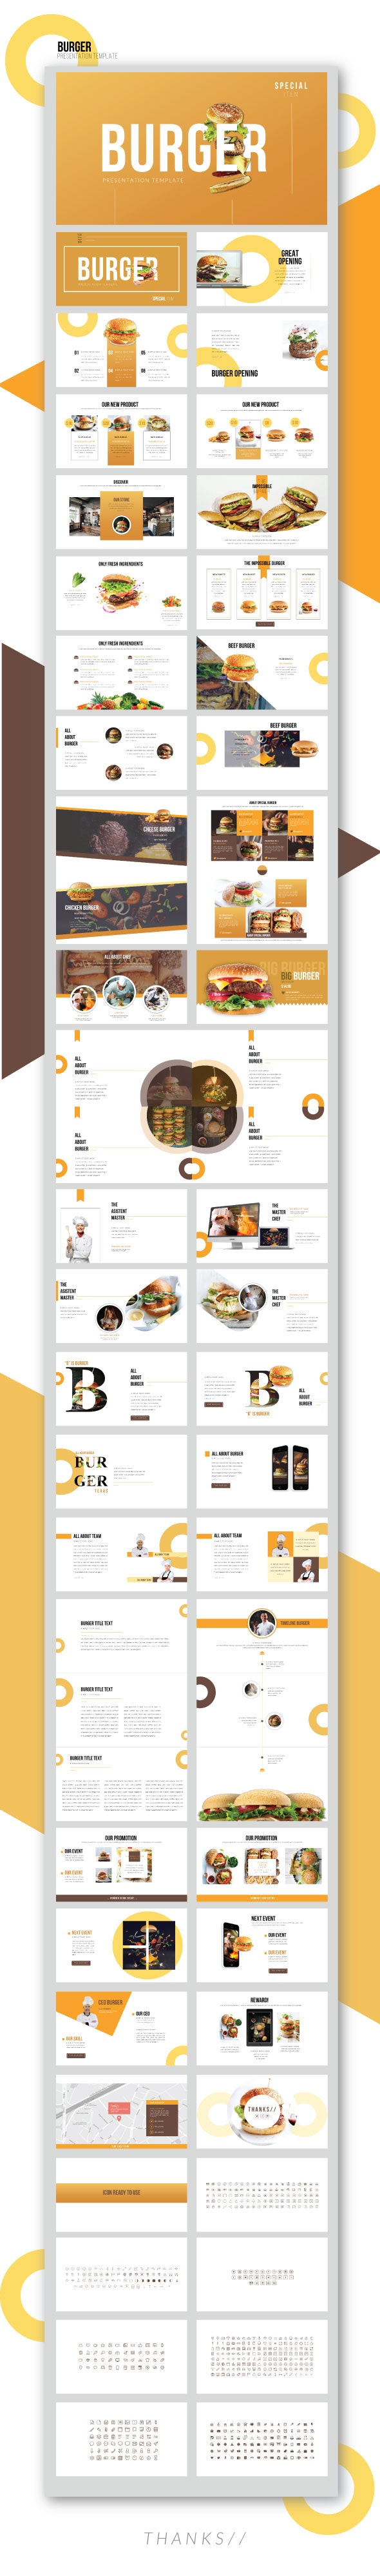 Special Burger - Presentation Template - Business PowerPoint Templates